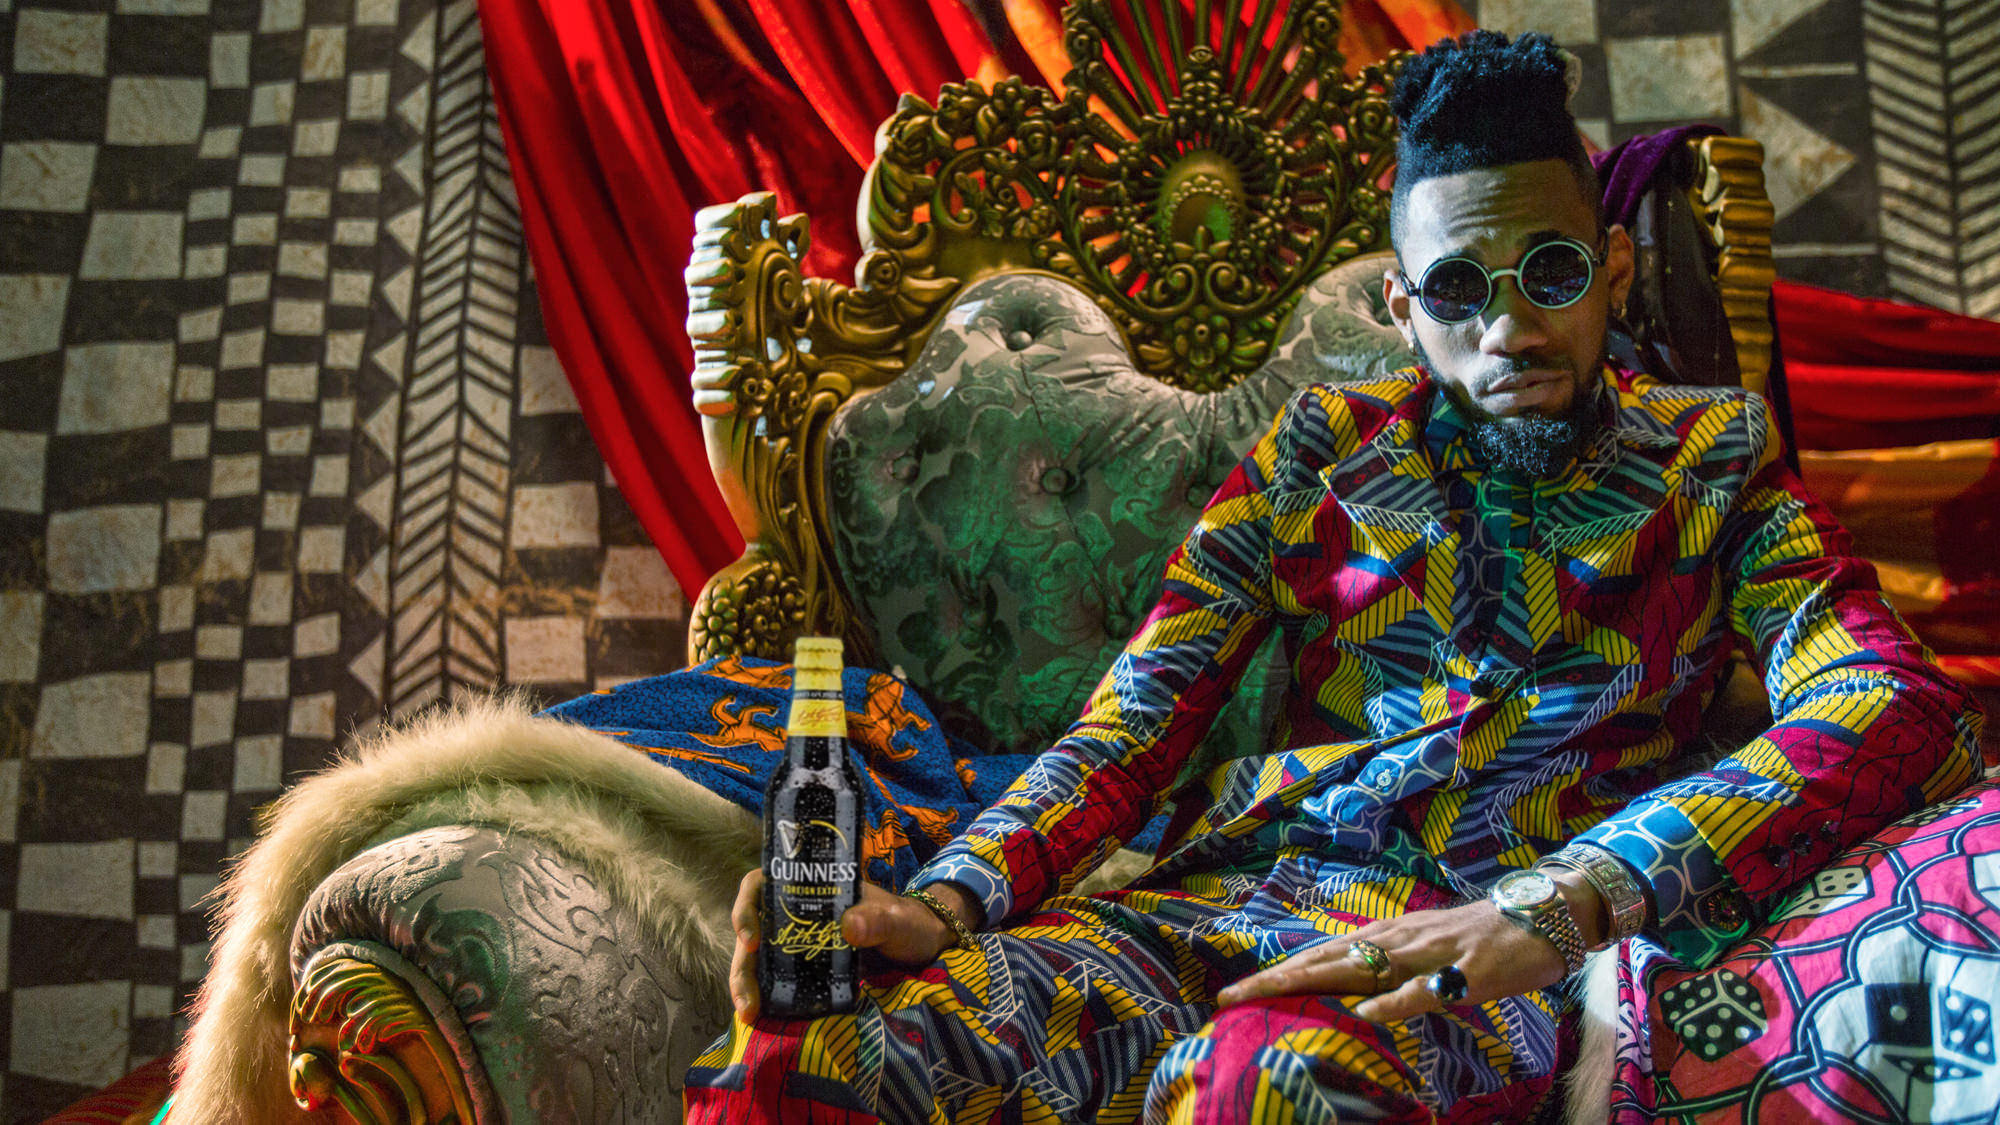 Campaign image of Nigerian Rapper Phyno with a Guinness bottle for Guinness Campaign #MadeOfBlack Made of Black | Michelle Wastie Photography